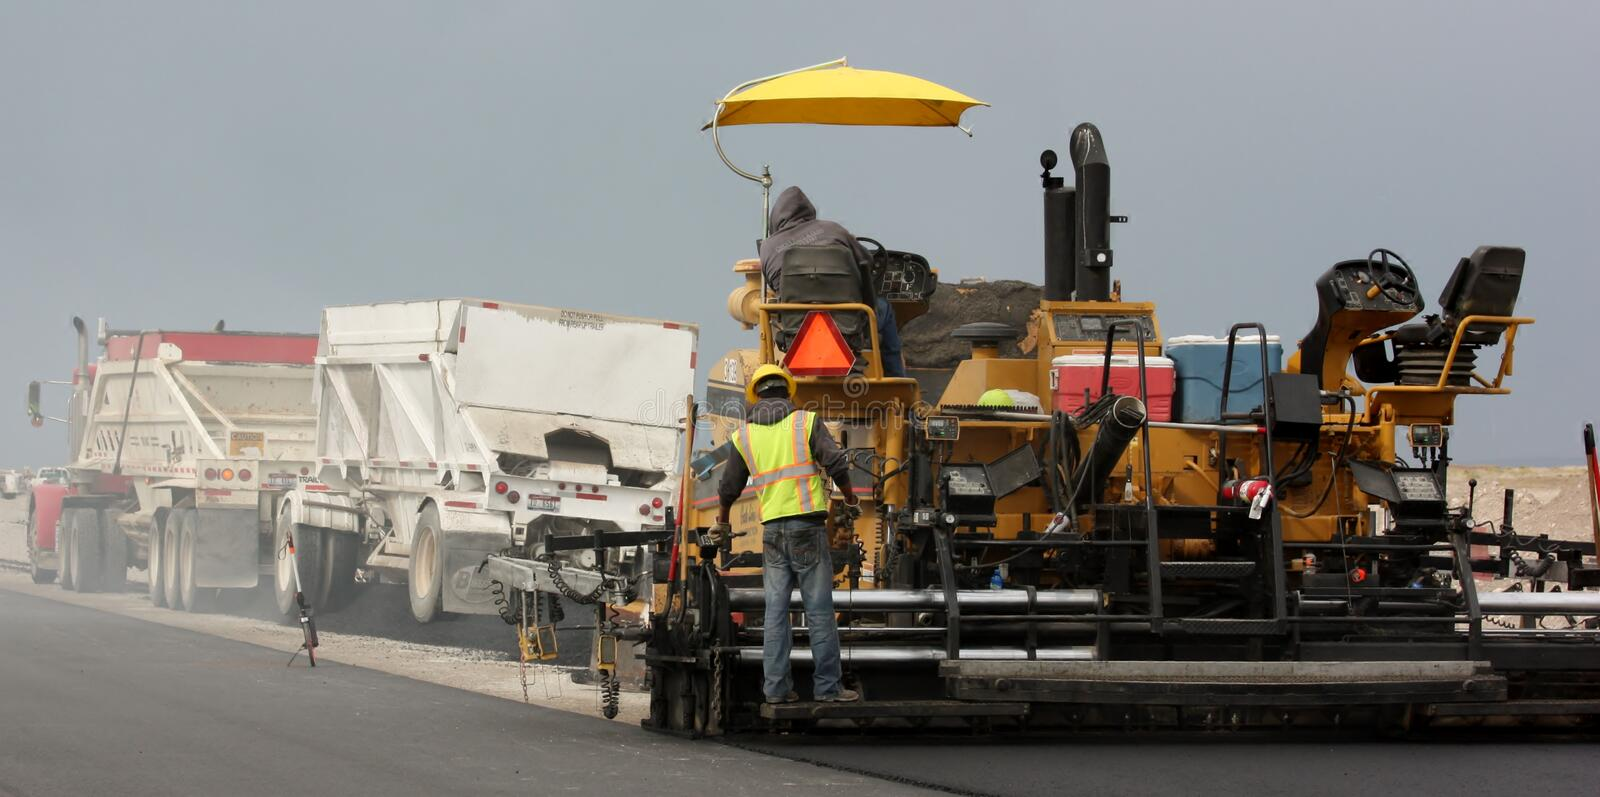 Paving with trucks royalty free stock photos